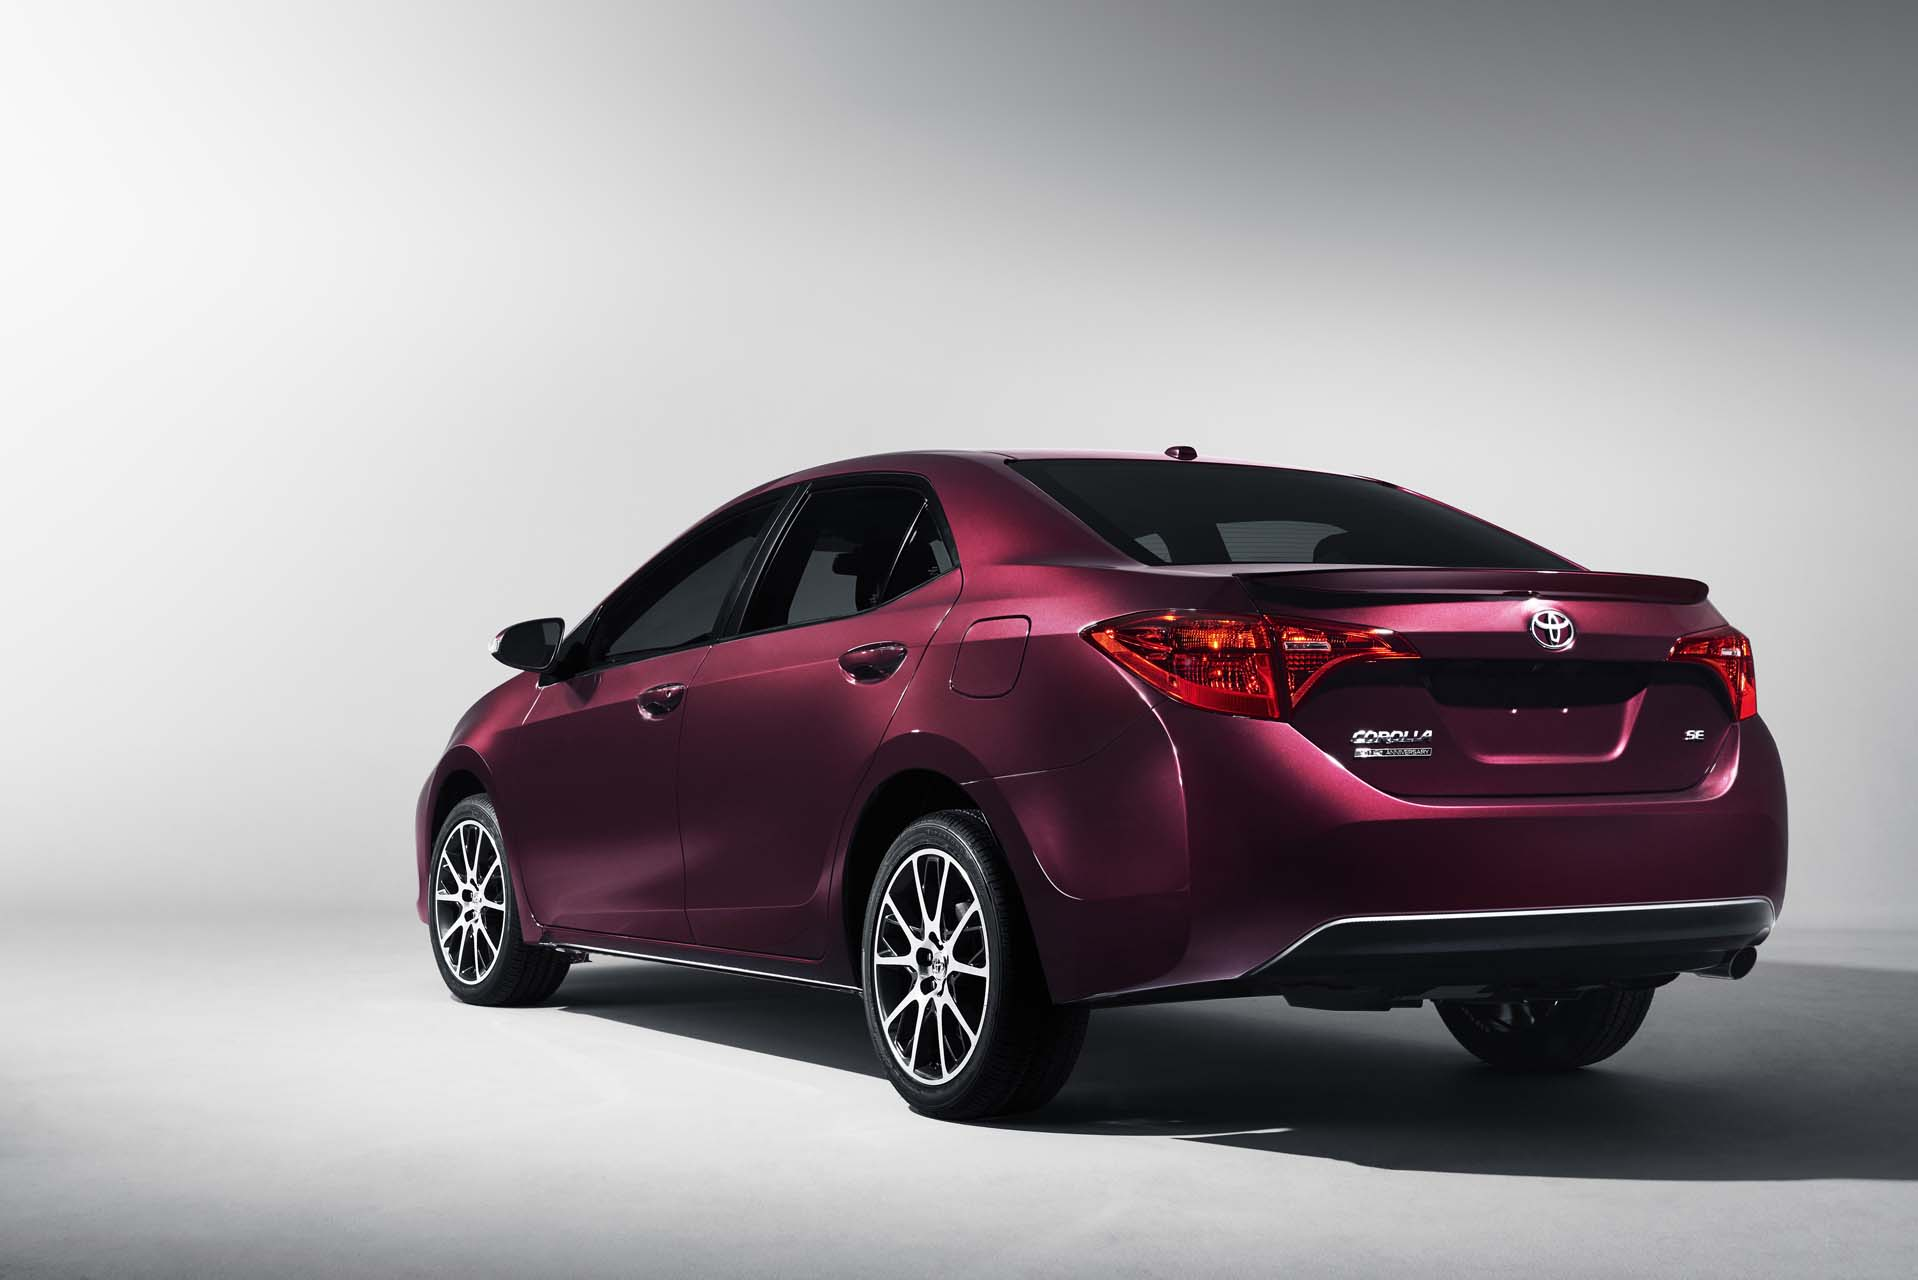 For more information about corolla history visit http www toyota global com showroo itage corolla